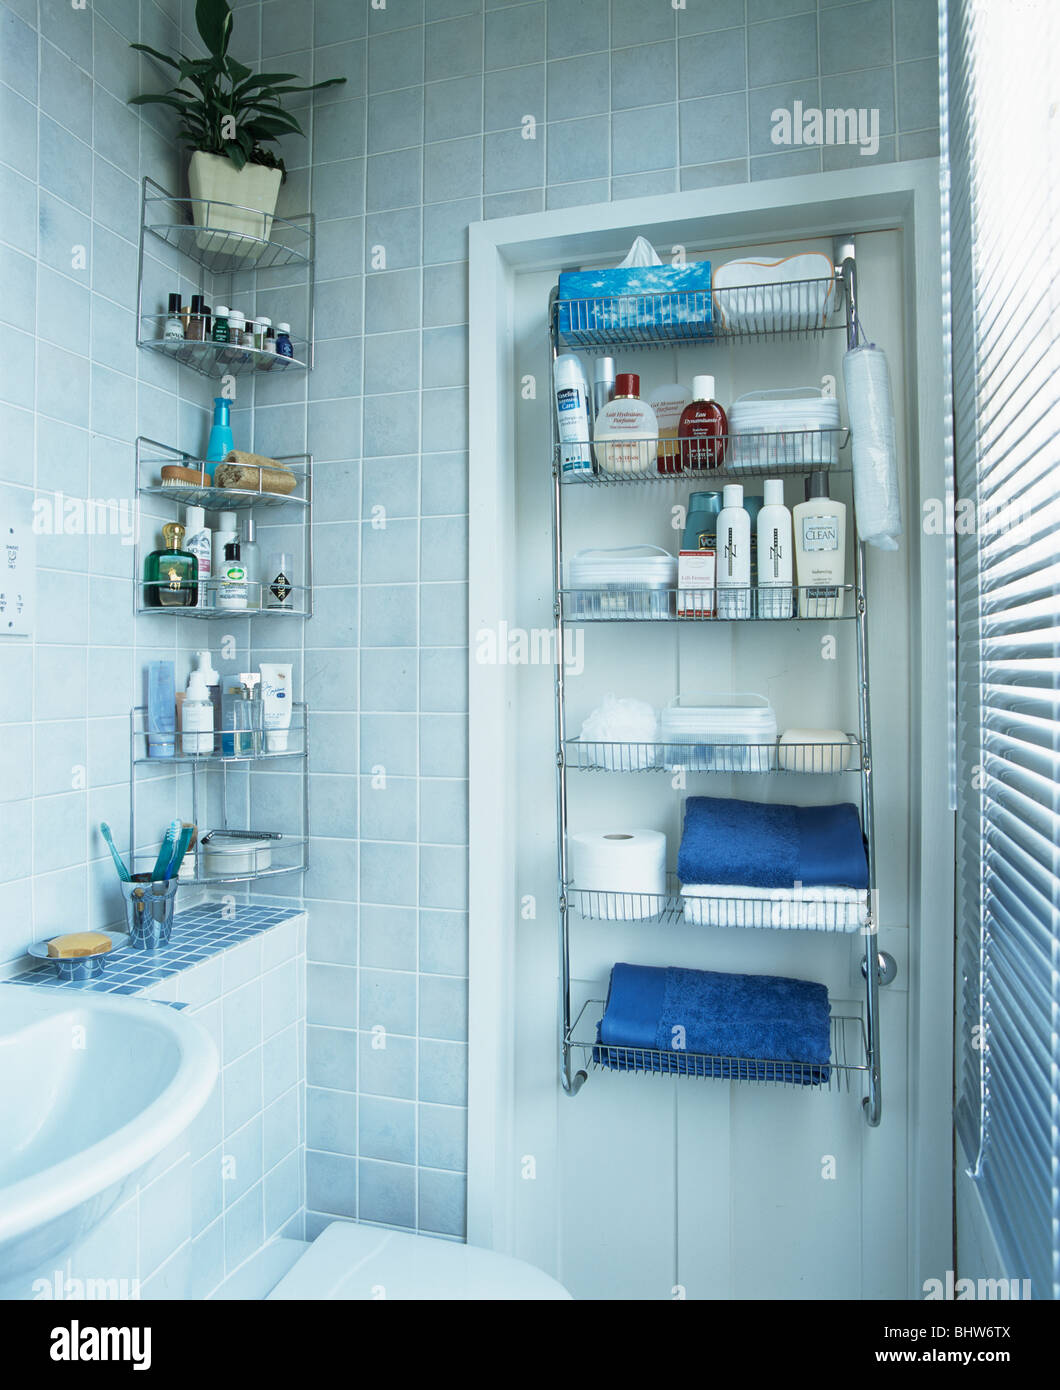 Bottles of toiletries and towels on stainless-steel shelves in ...